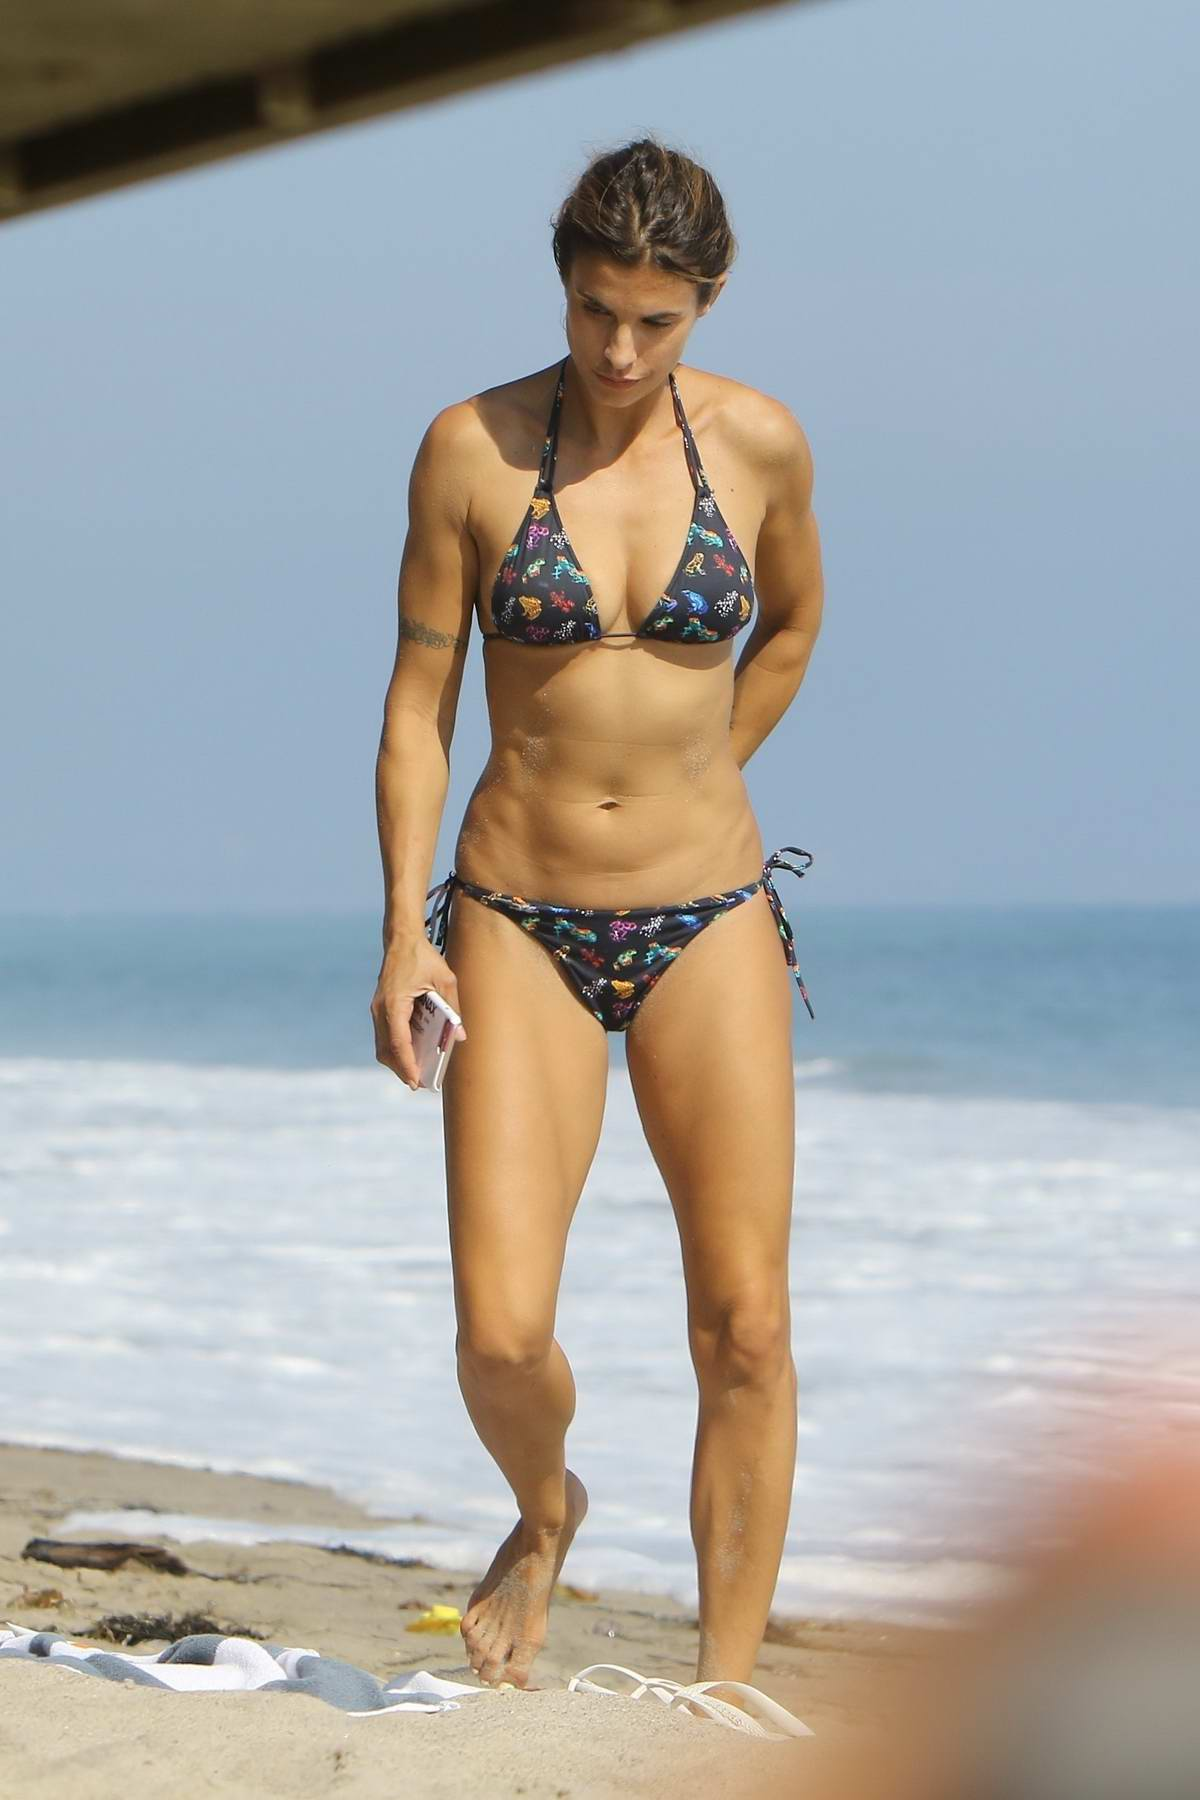 Elisabetta Canalis in bikini relaxing at the beach in Malibu